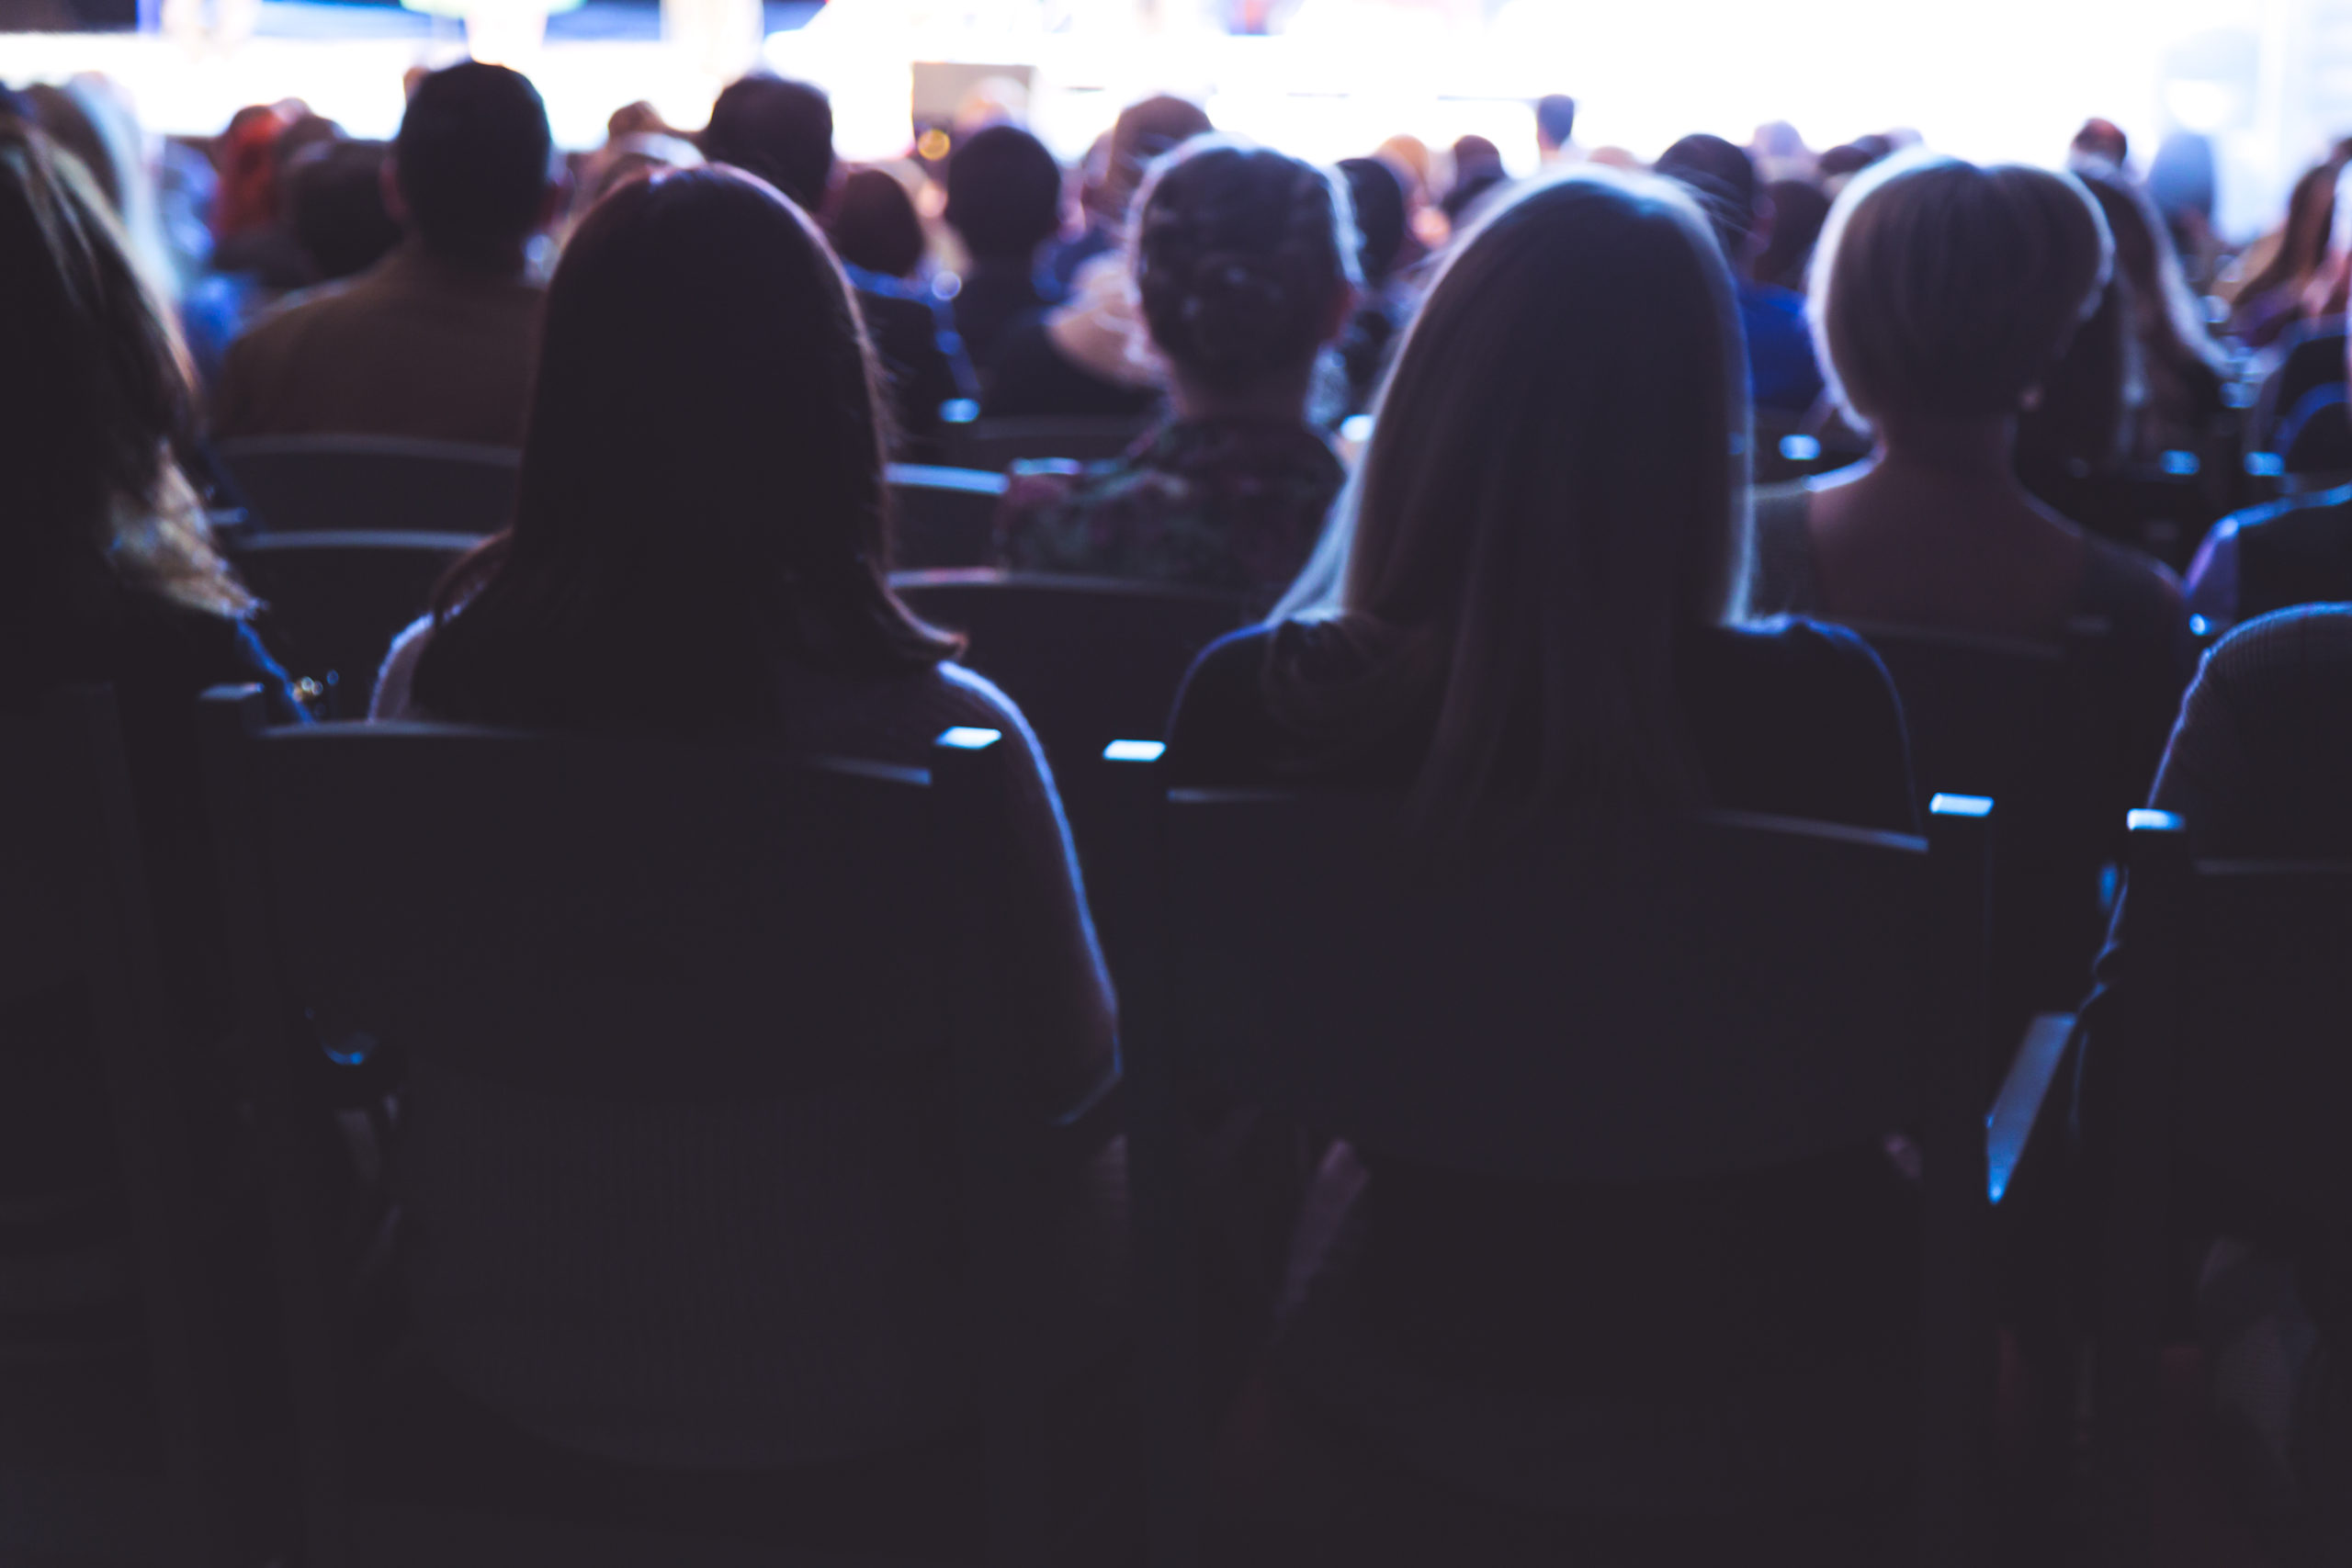 People in the theater auditorium during the performance. Soft focus.